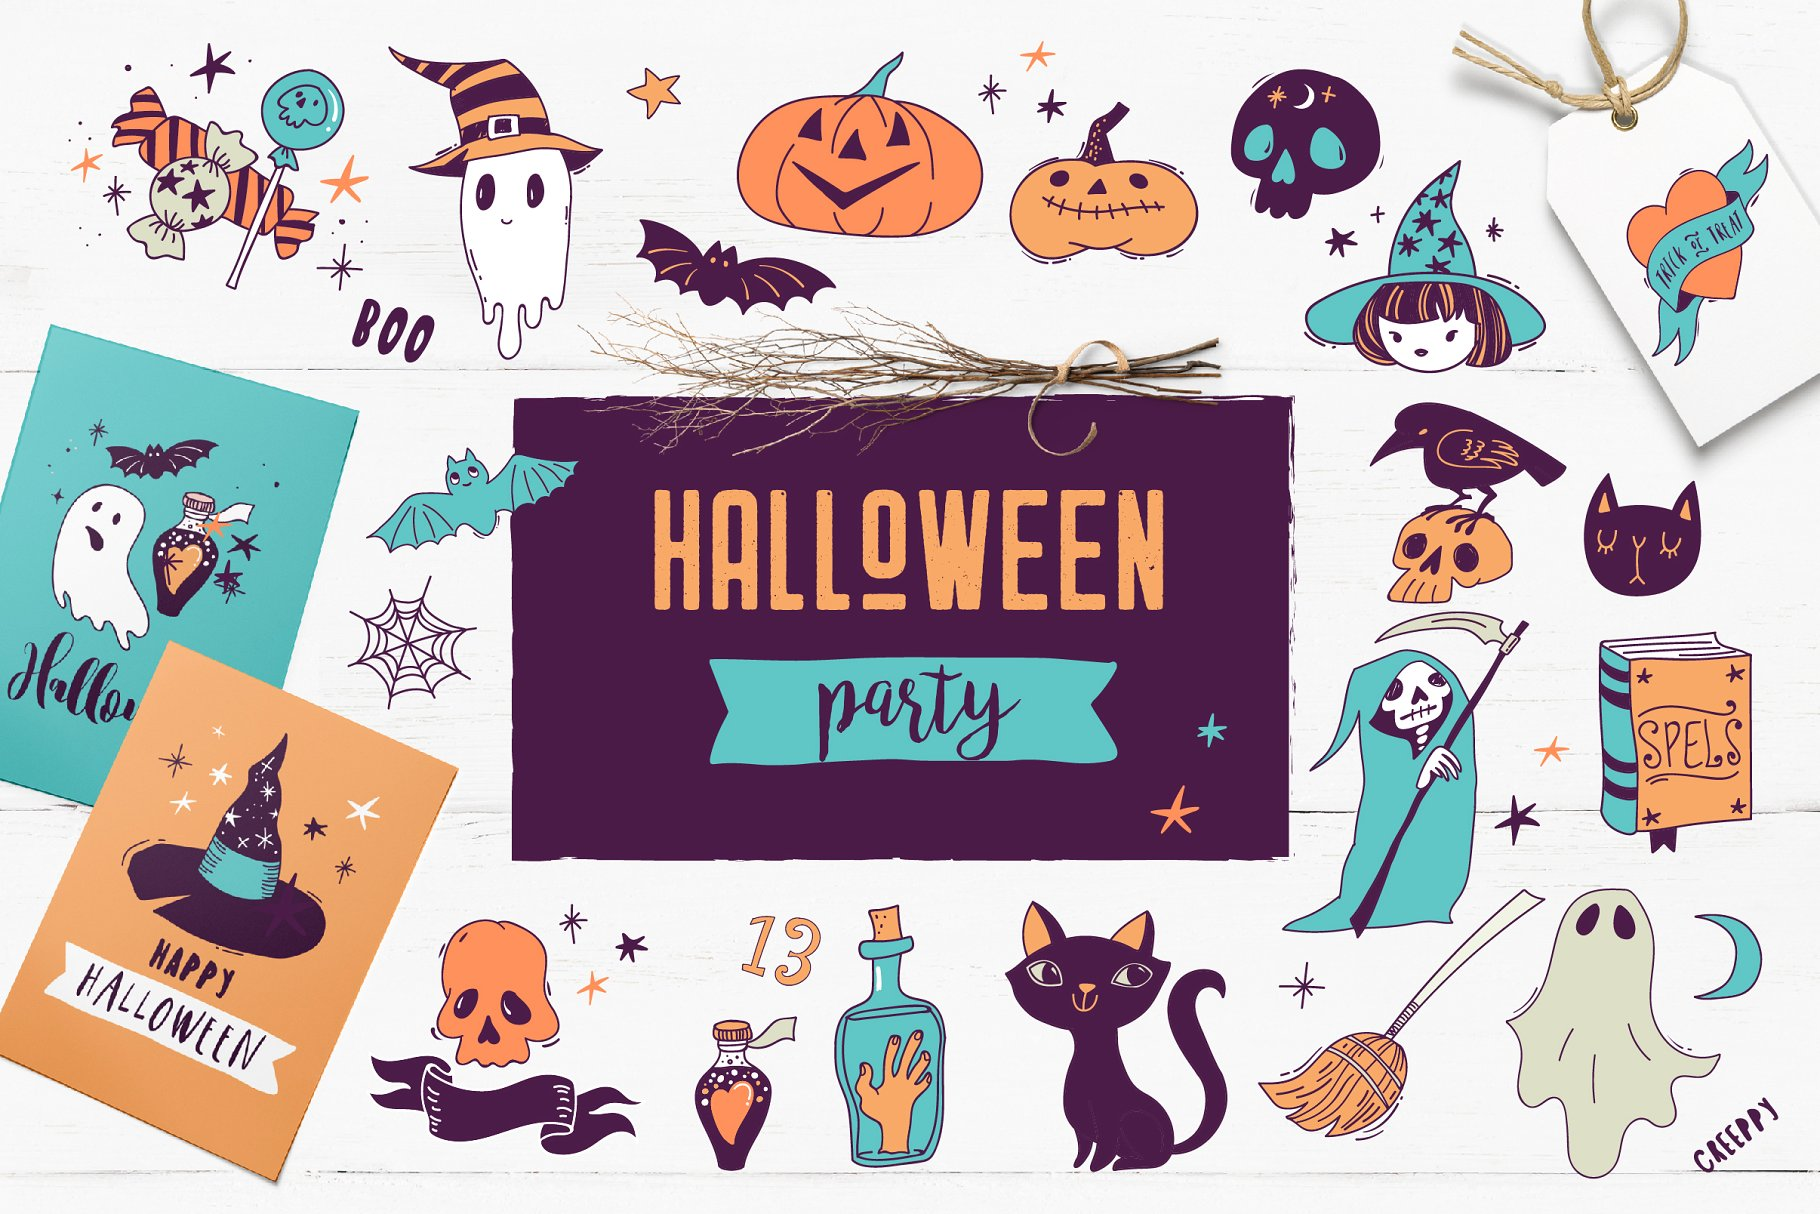 halloween-layout-07-.jpg